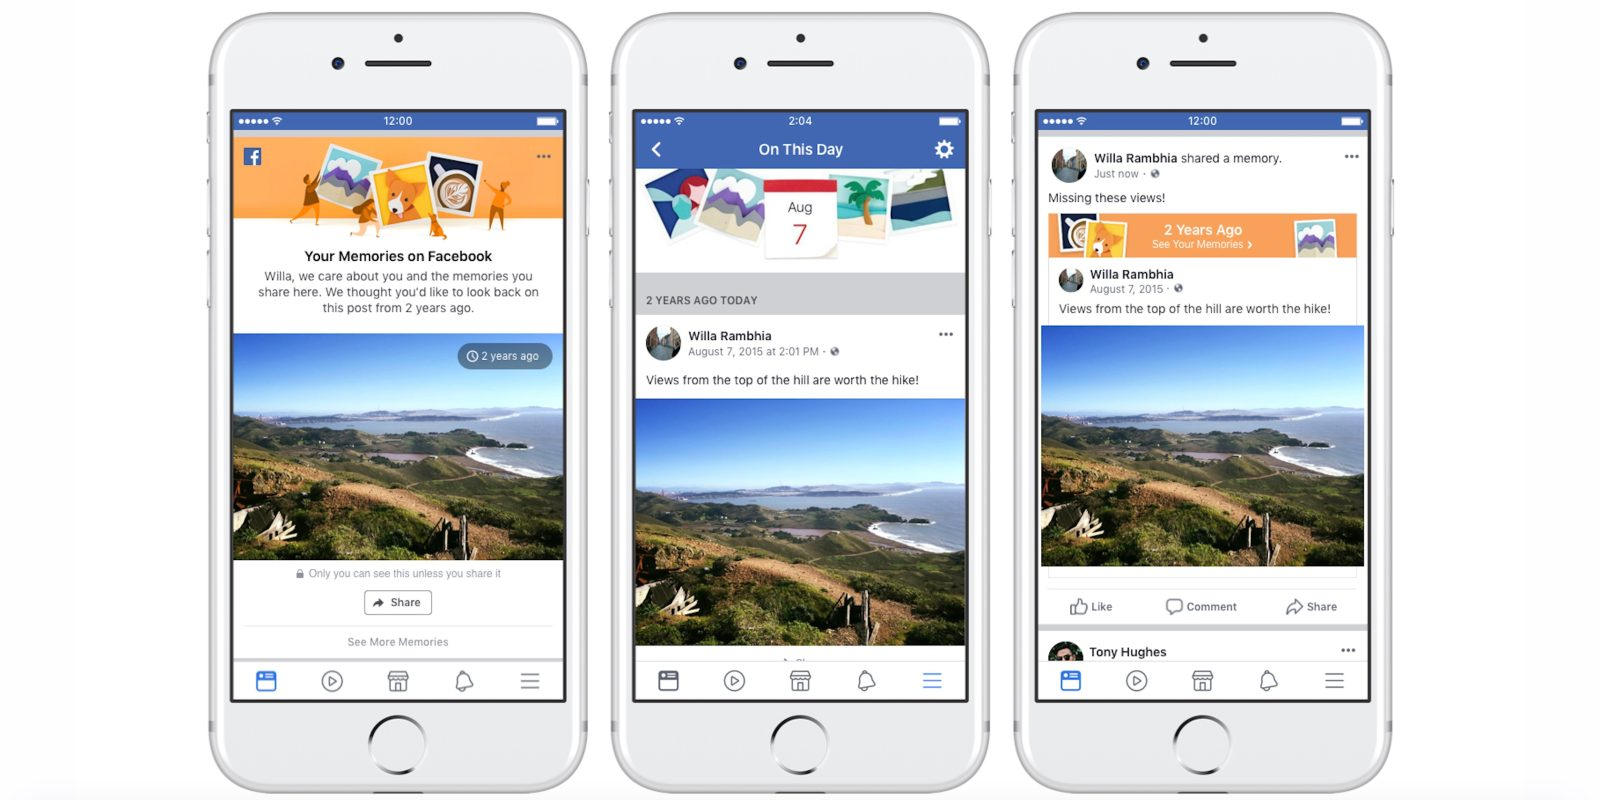 Facebook announces new memory features & 'On This Day' changes